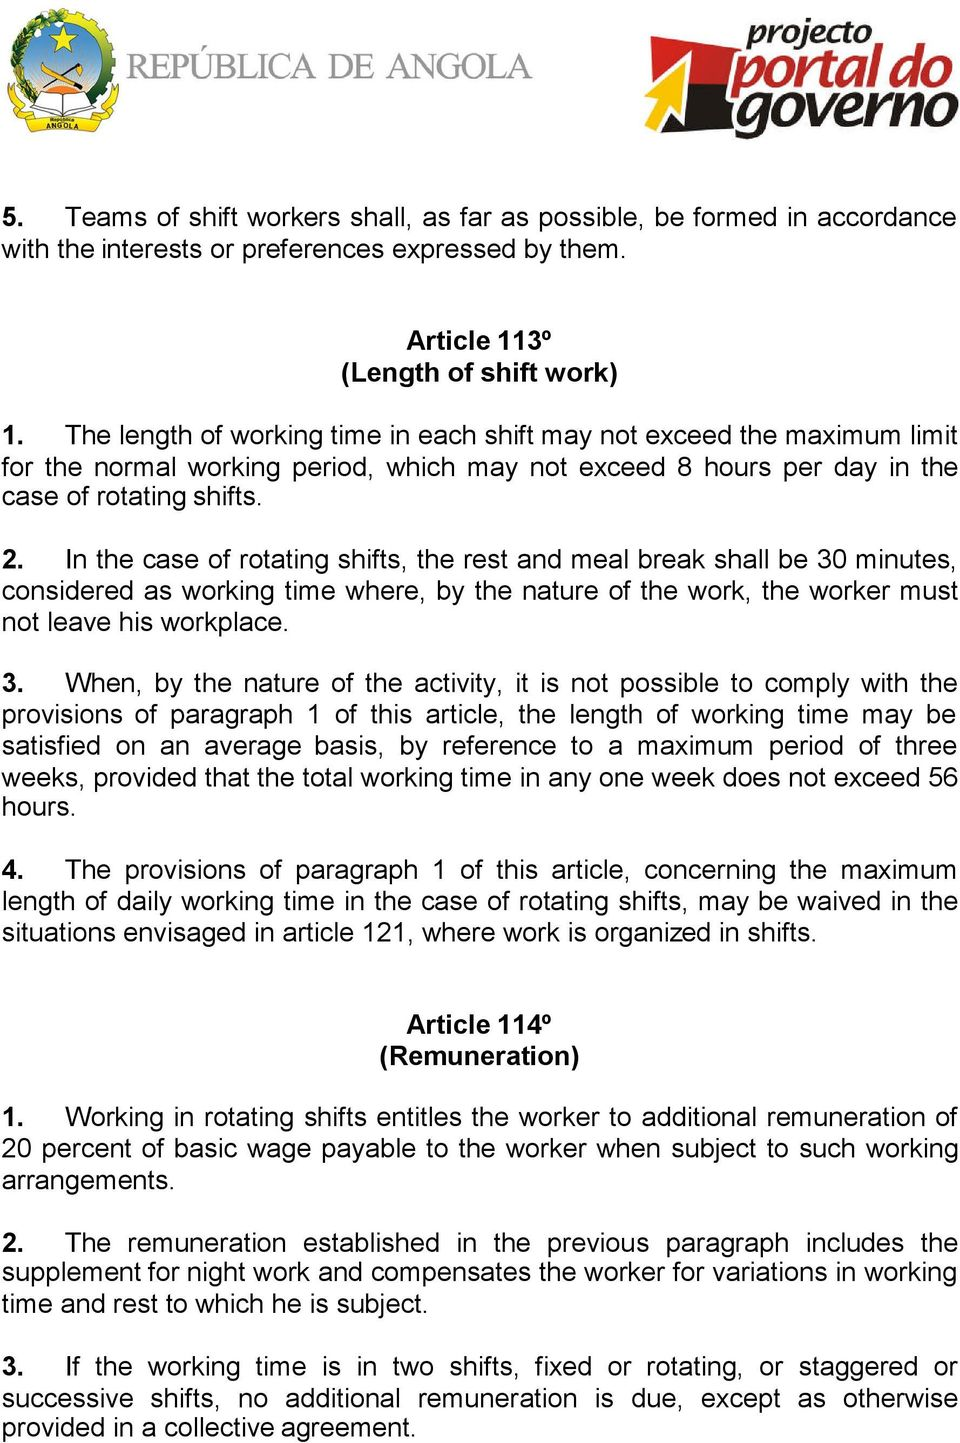 In the case of rotating shifts, the rest and meal break shall be 30